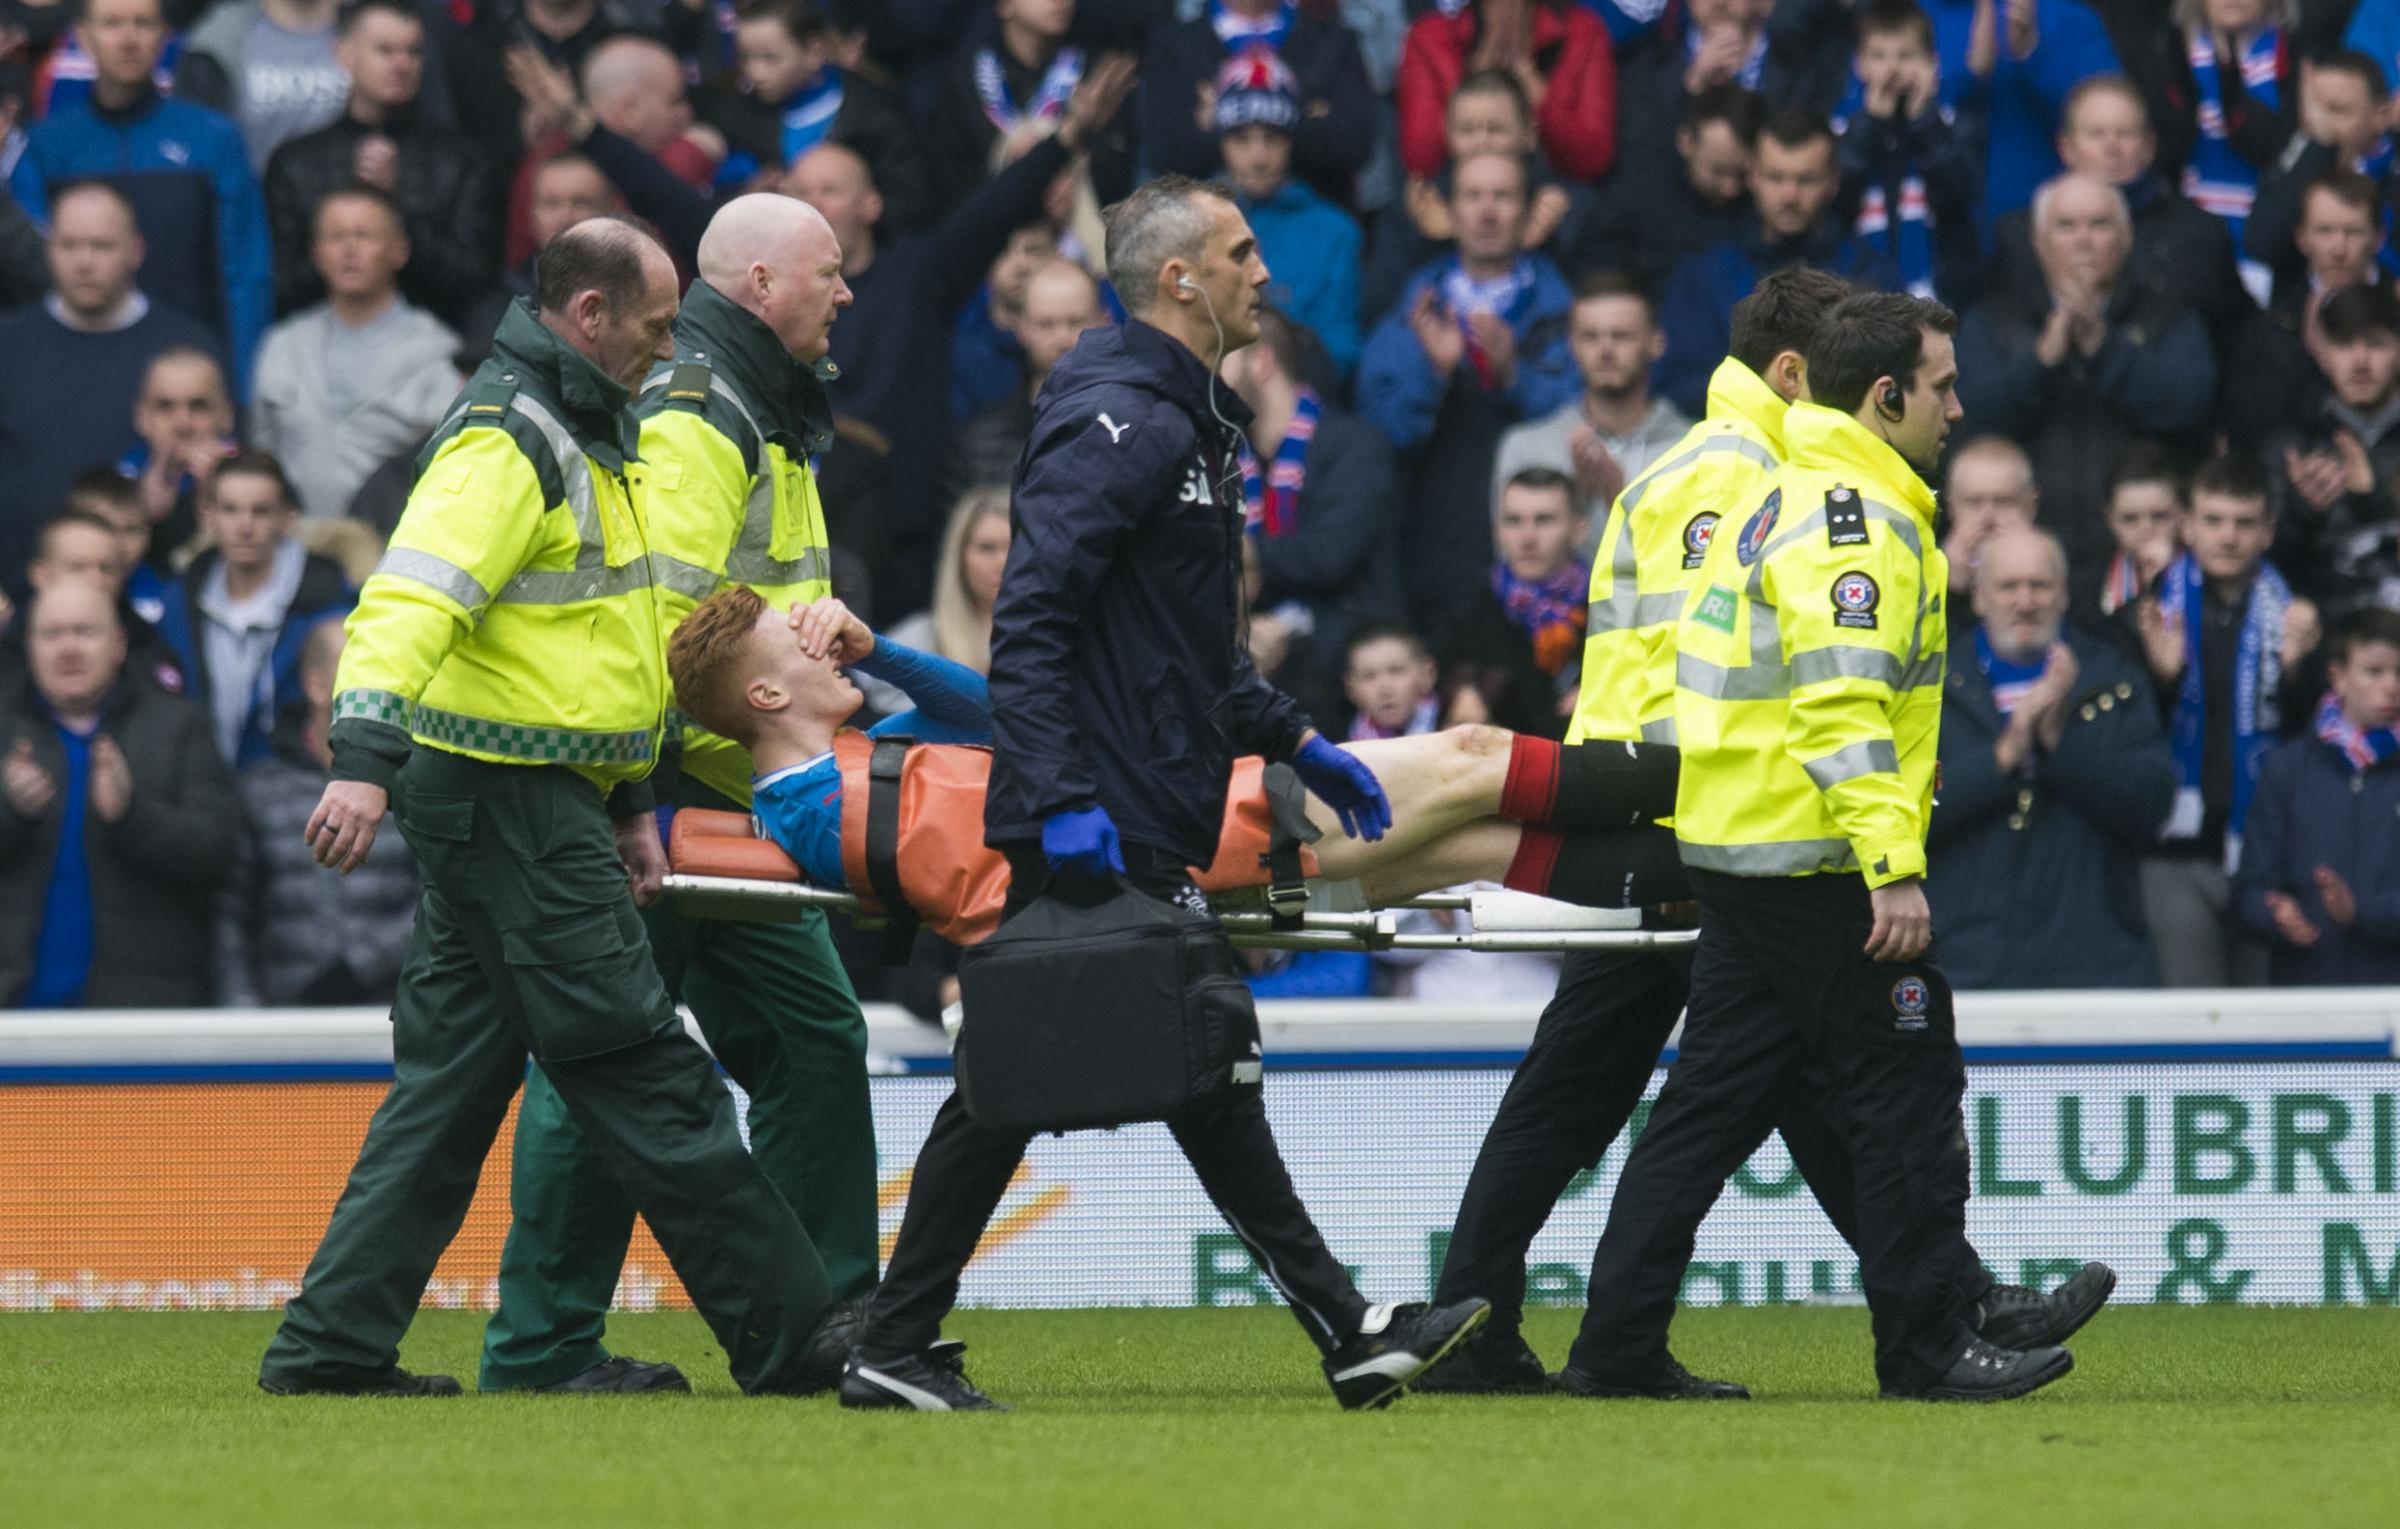 David Bates is stretchered off